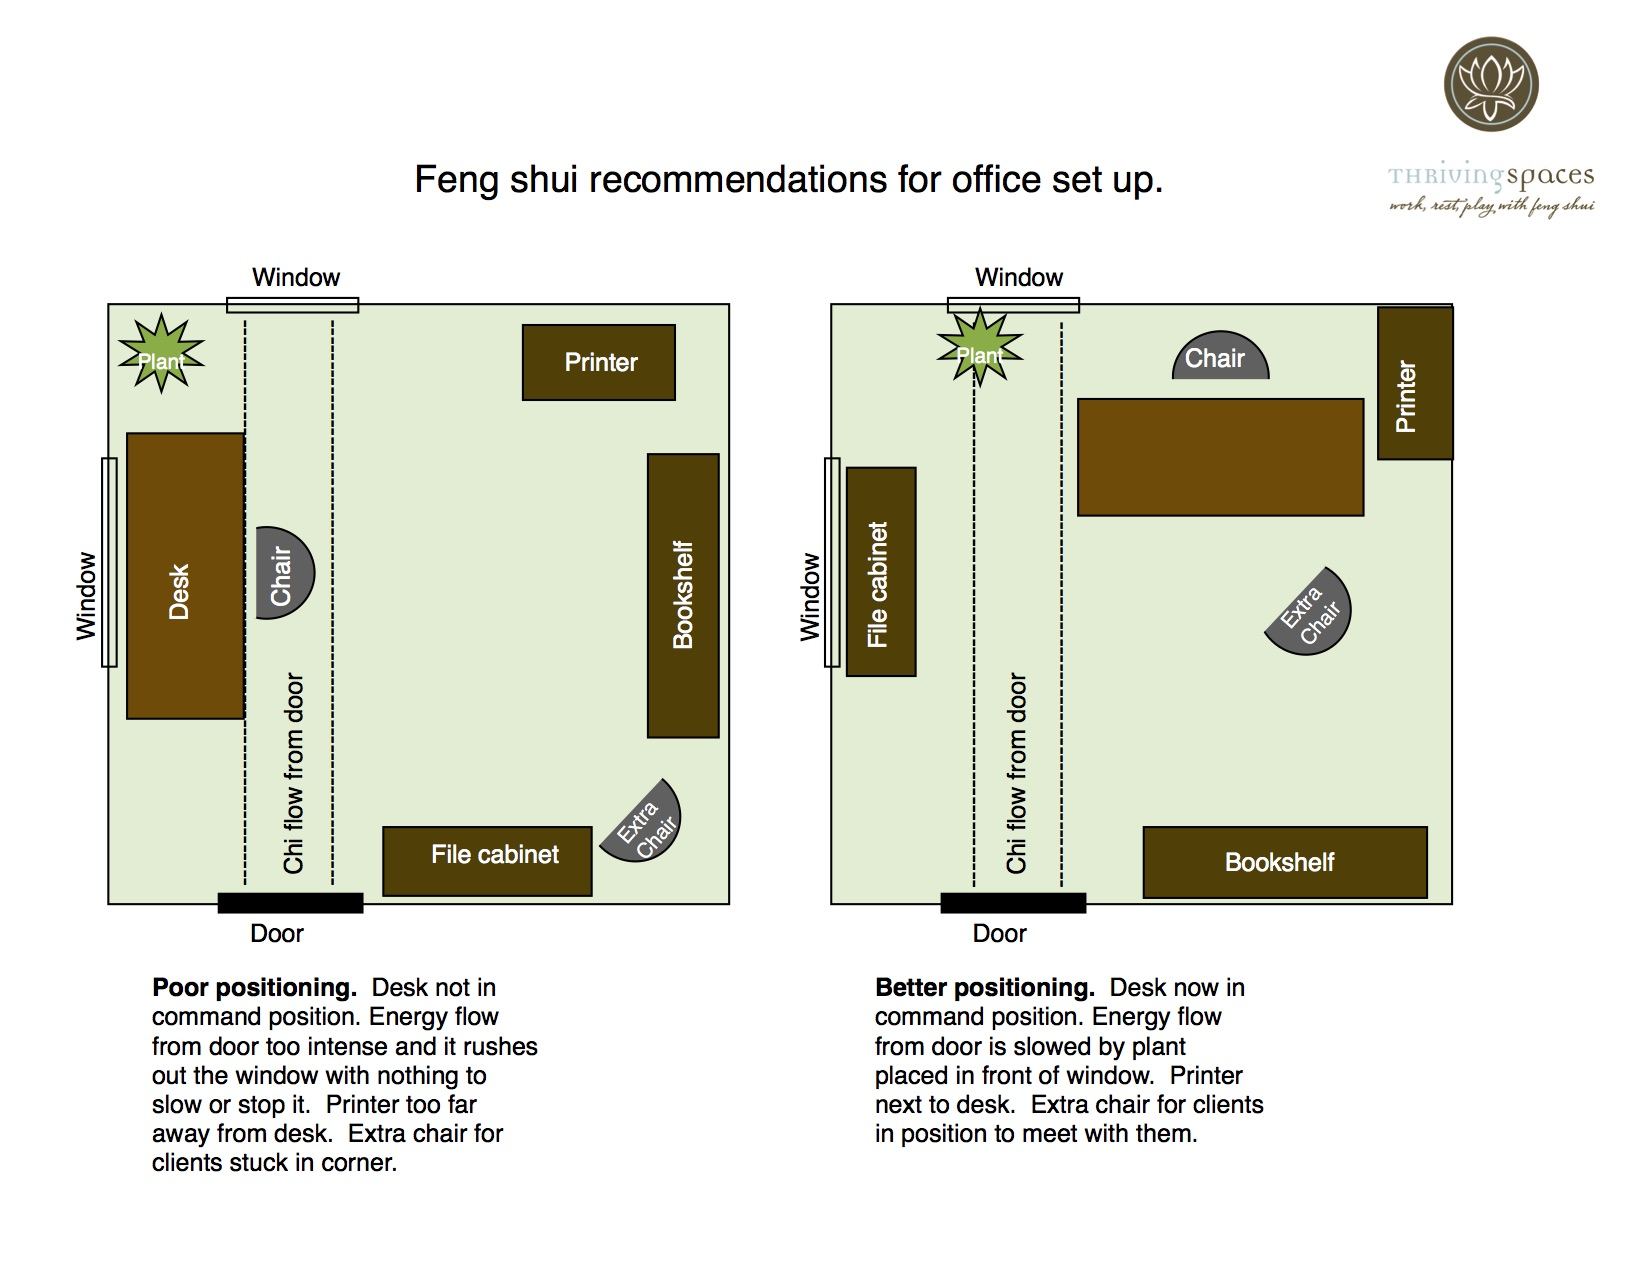 Room Arrangement Use Feng Shui To Set Up A Home Office Thriving Spaces